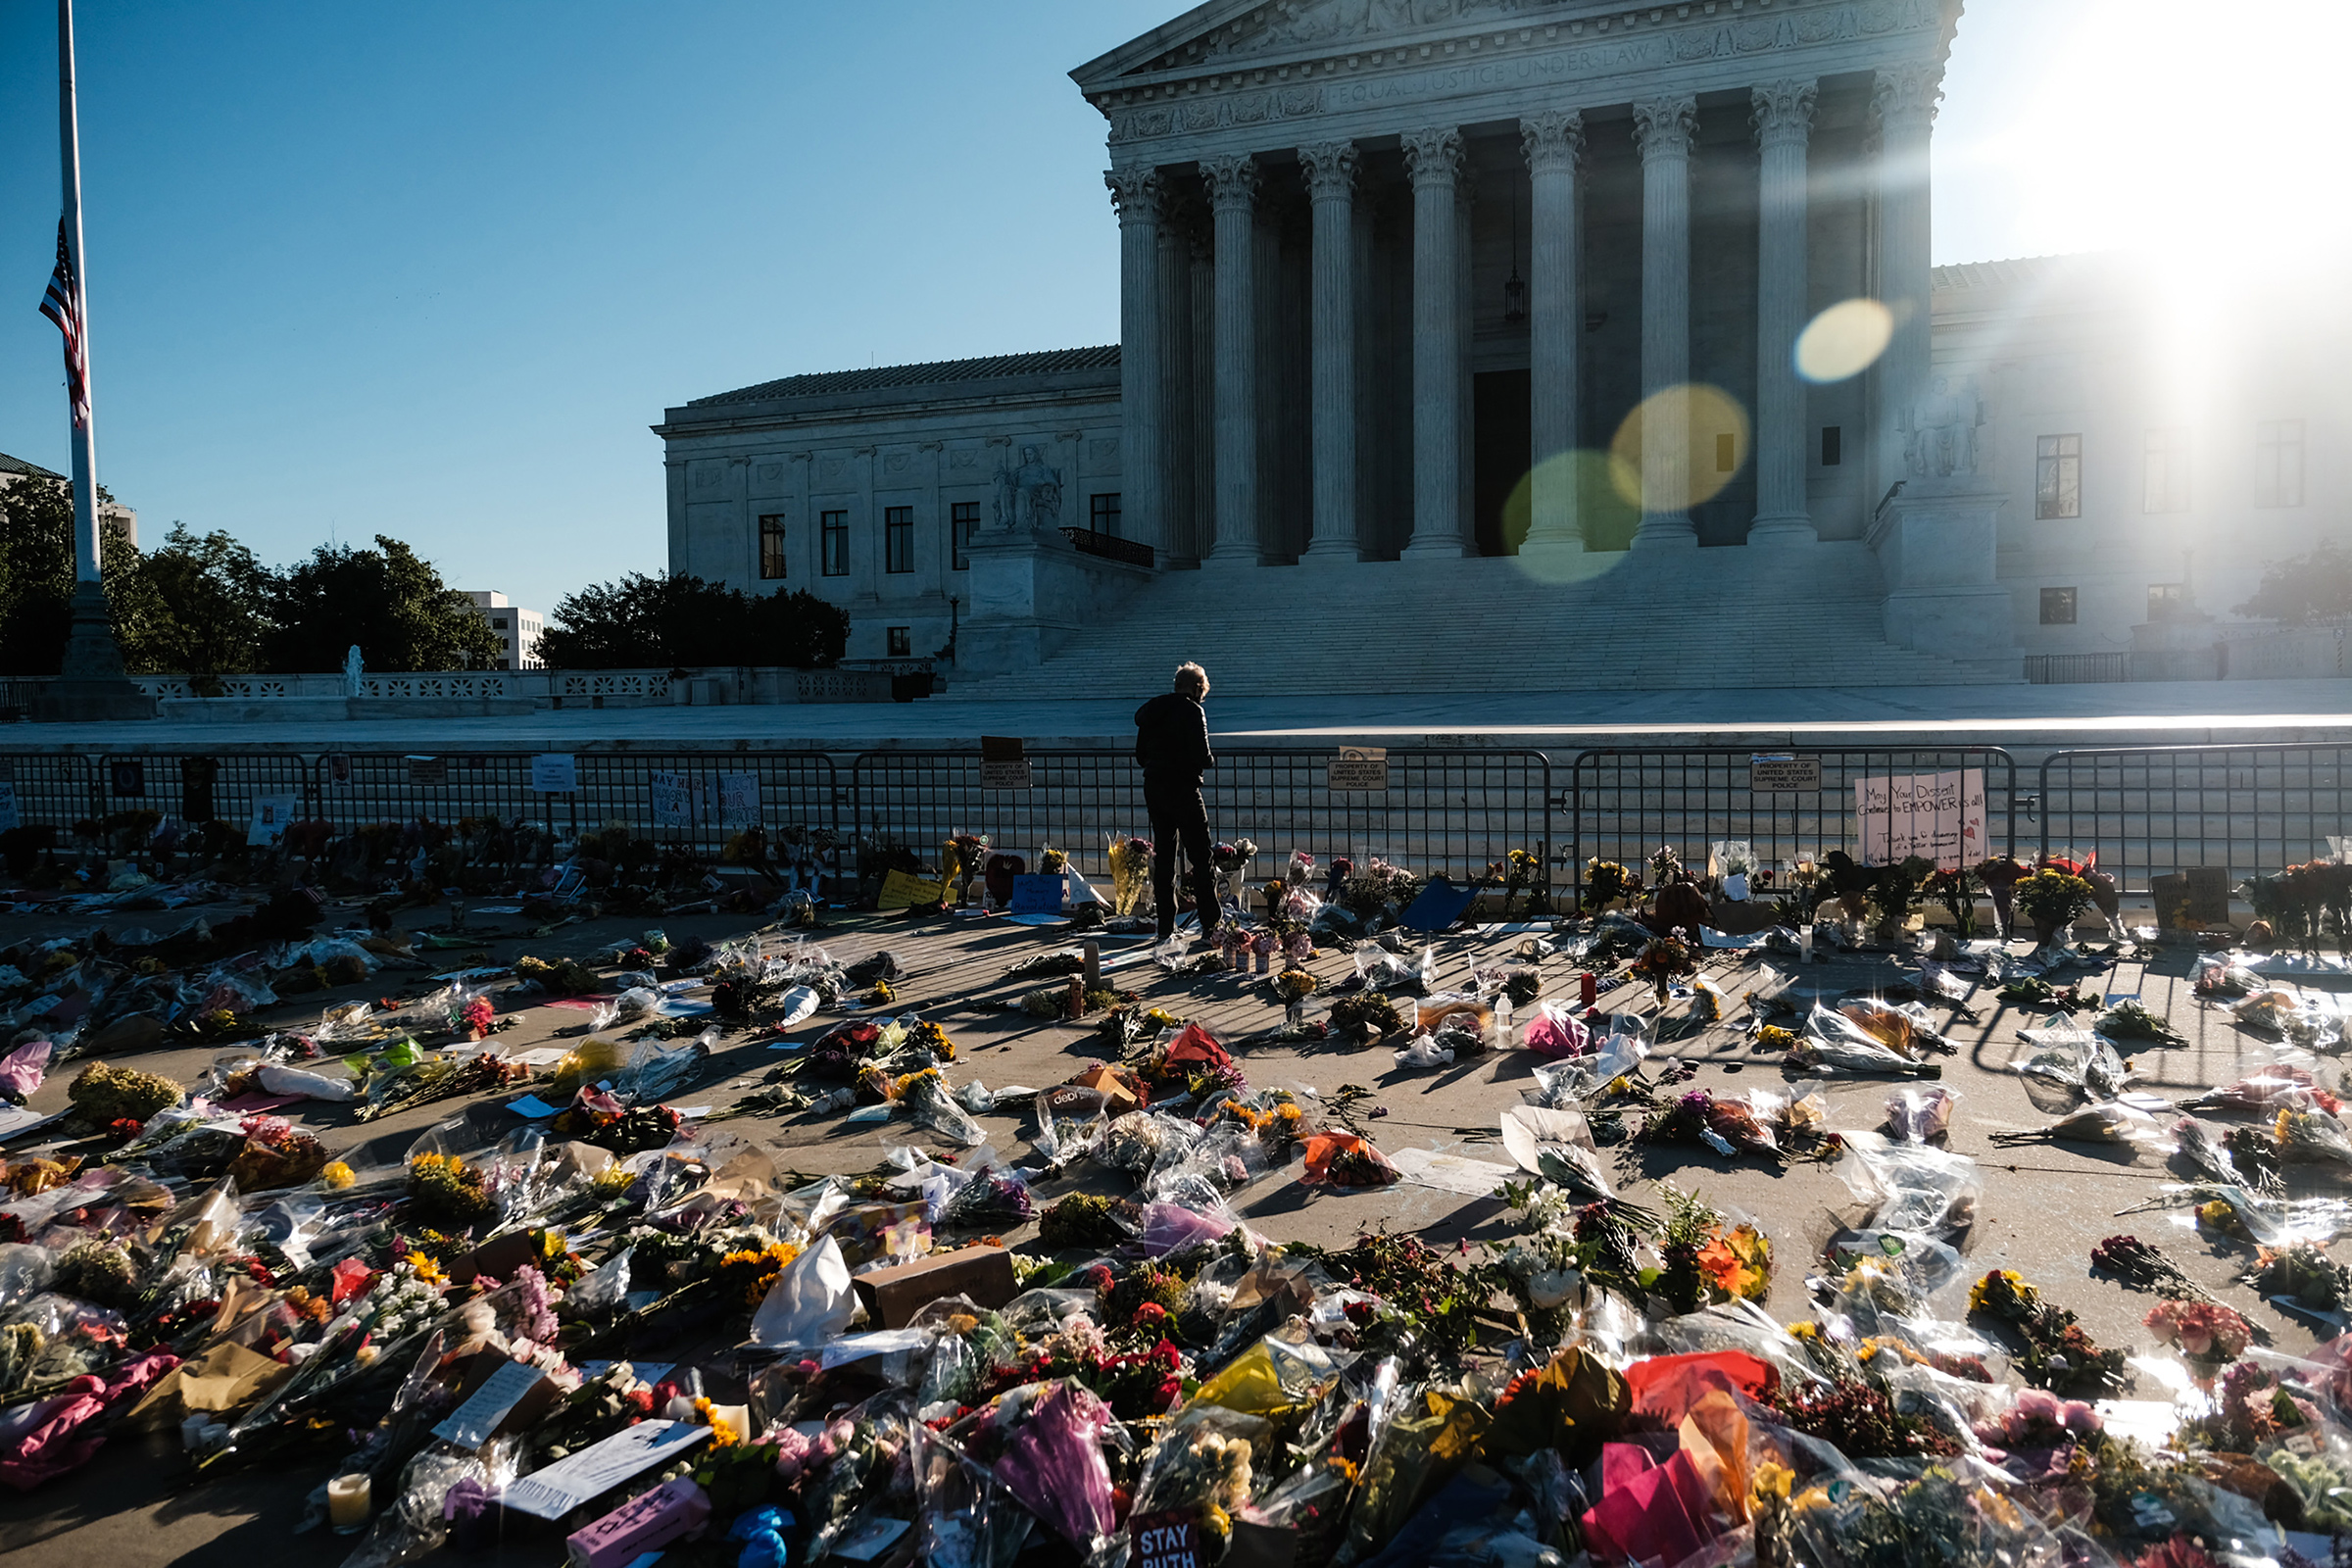 A mourner pays their respects at a makeshift memorial outside the Supreme Court building in Washington, on Sept. 20